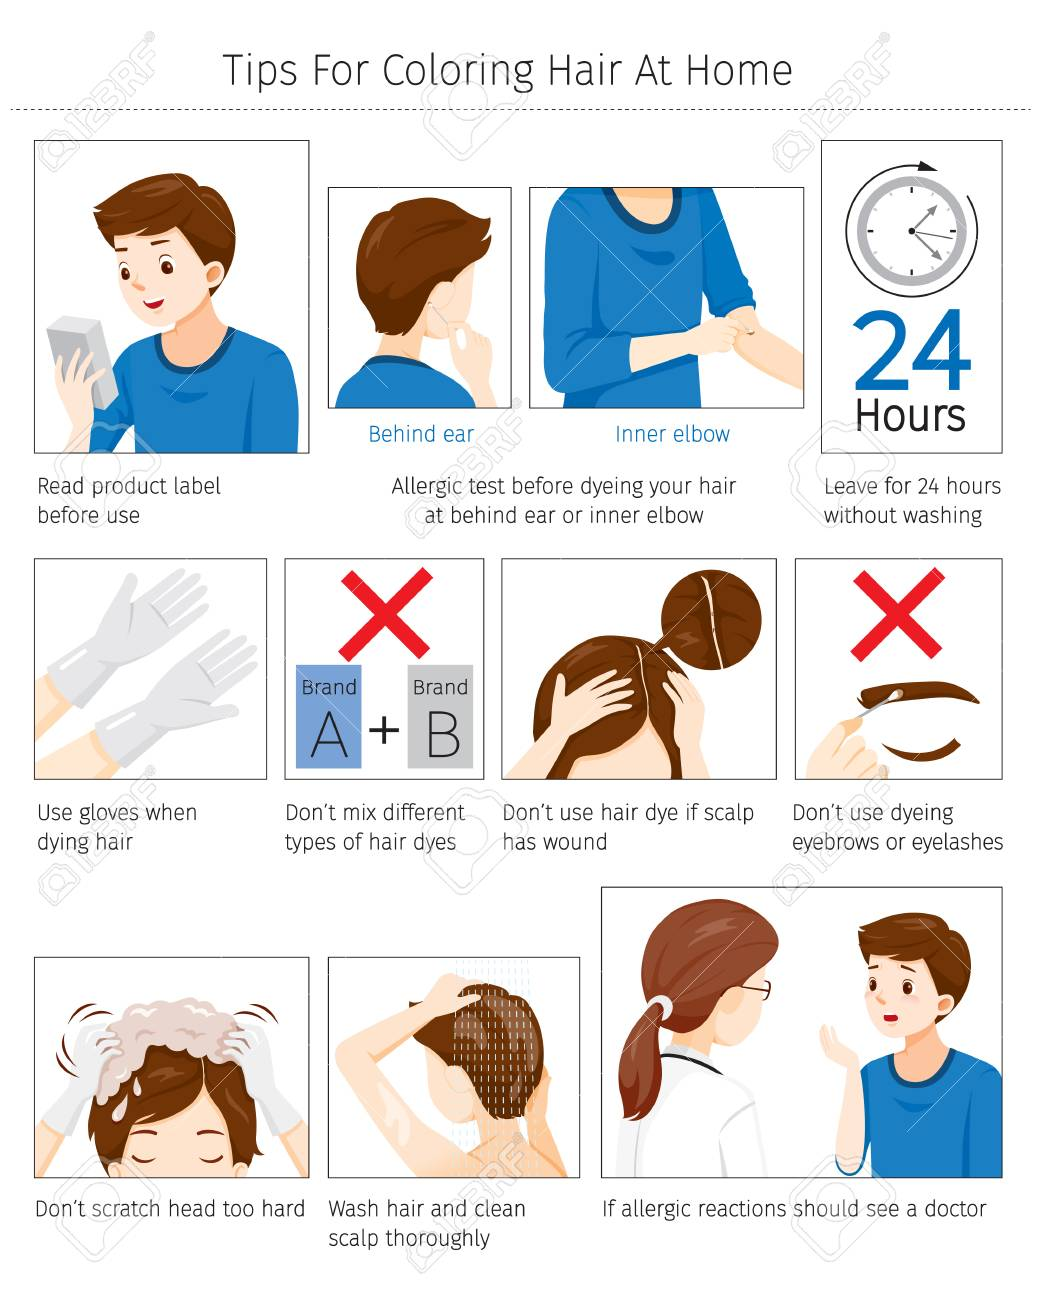 Tips And Precautions Before Use Hair Dye For Coloring Own Hair..